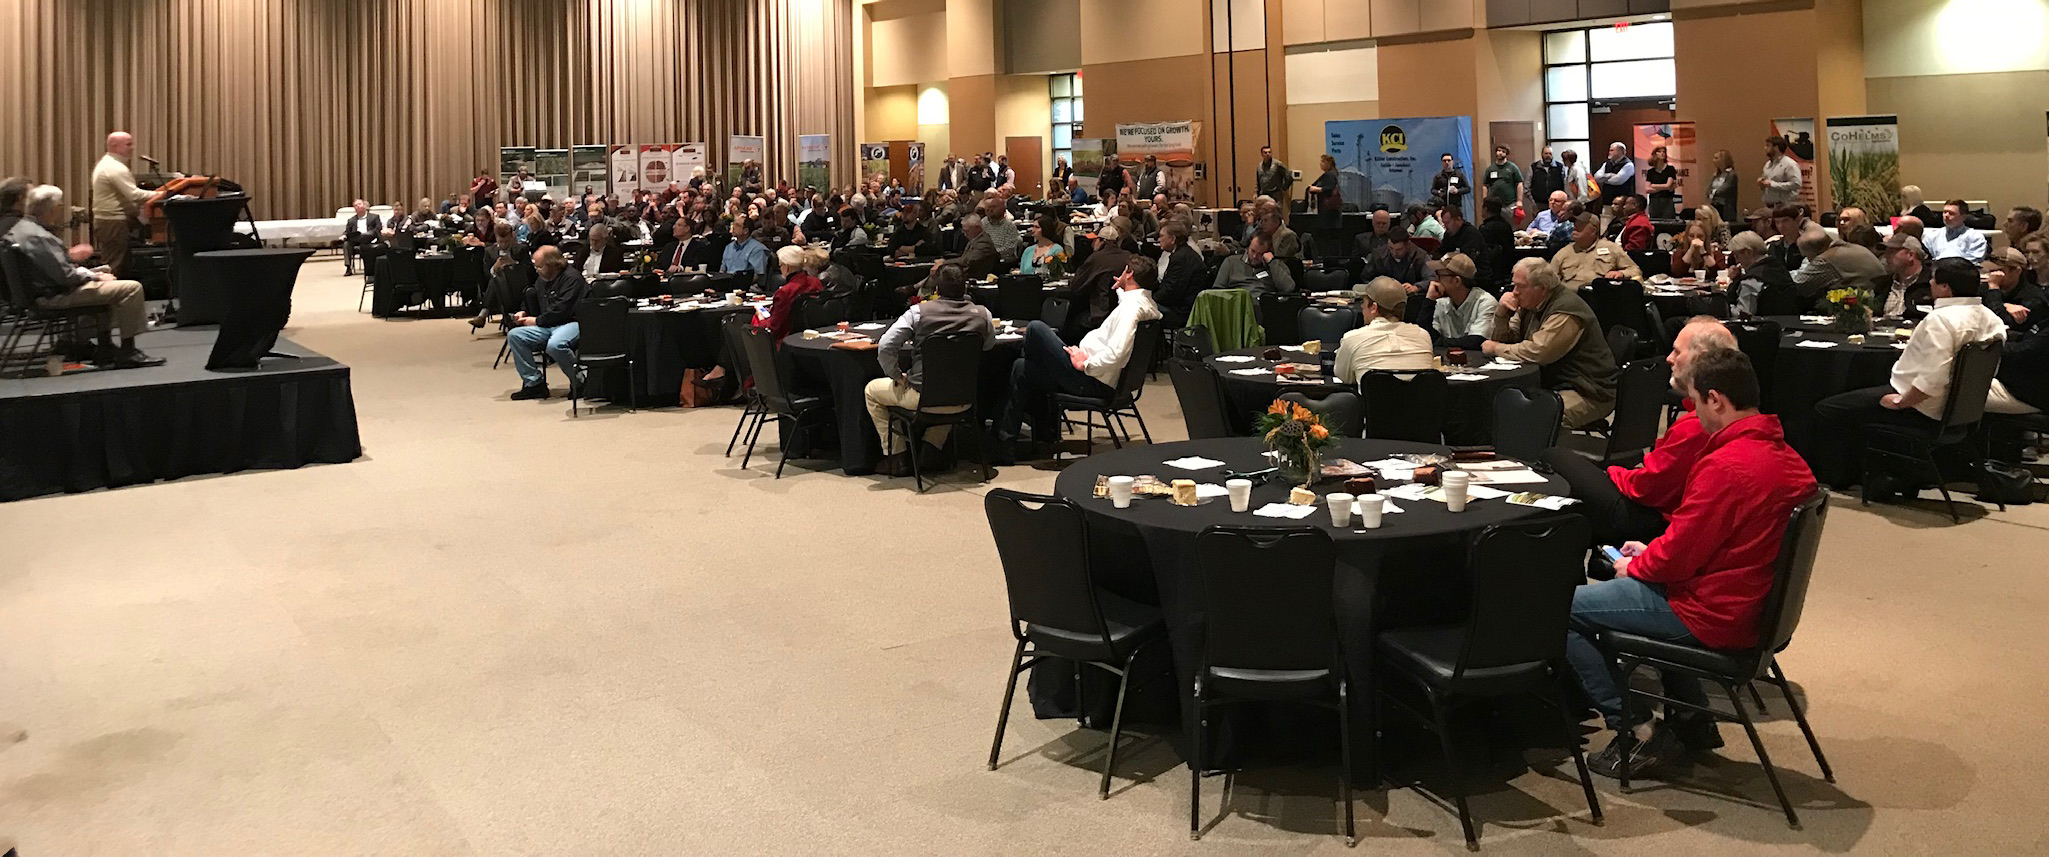 AR State meeting, crowd shot of people sitting at round tables draped in black tablecloths